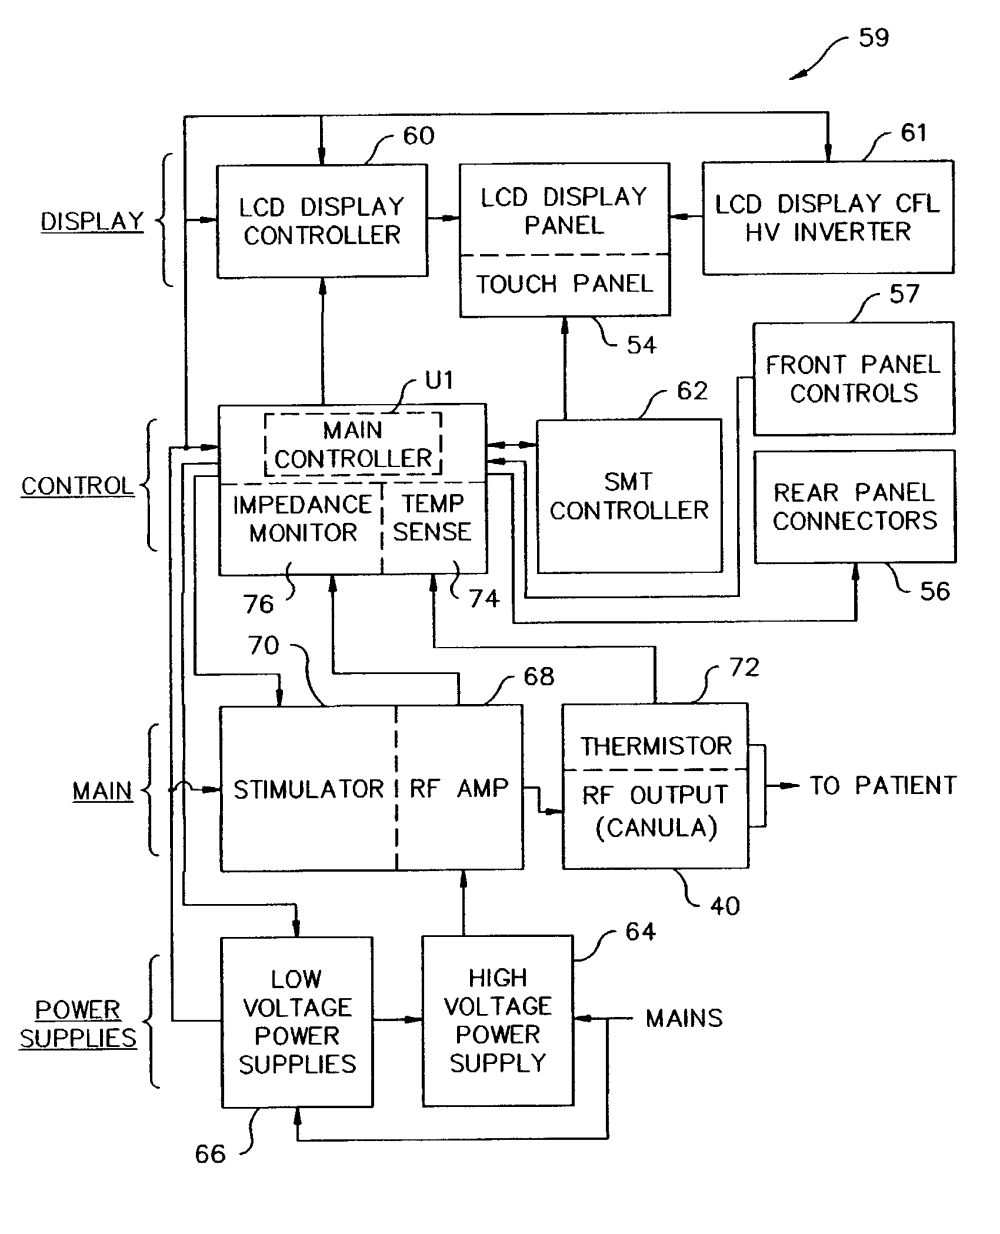 medium resolution of r4030 wiring diagram 20 wiring diagram images wiring taylor dunn carts equipment taylor dunn carts equipment